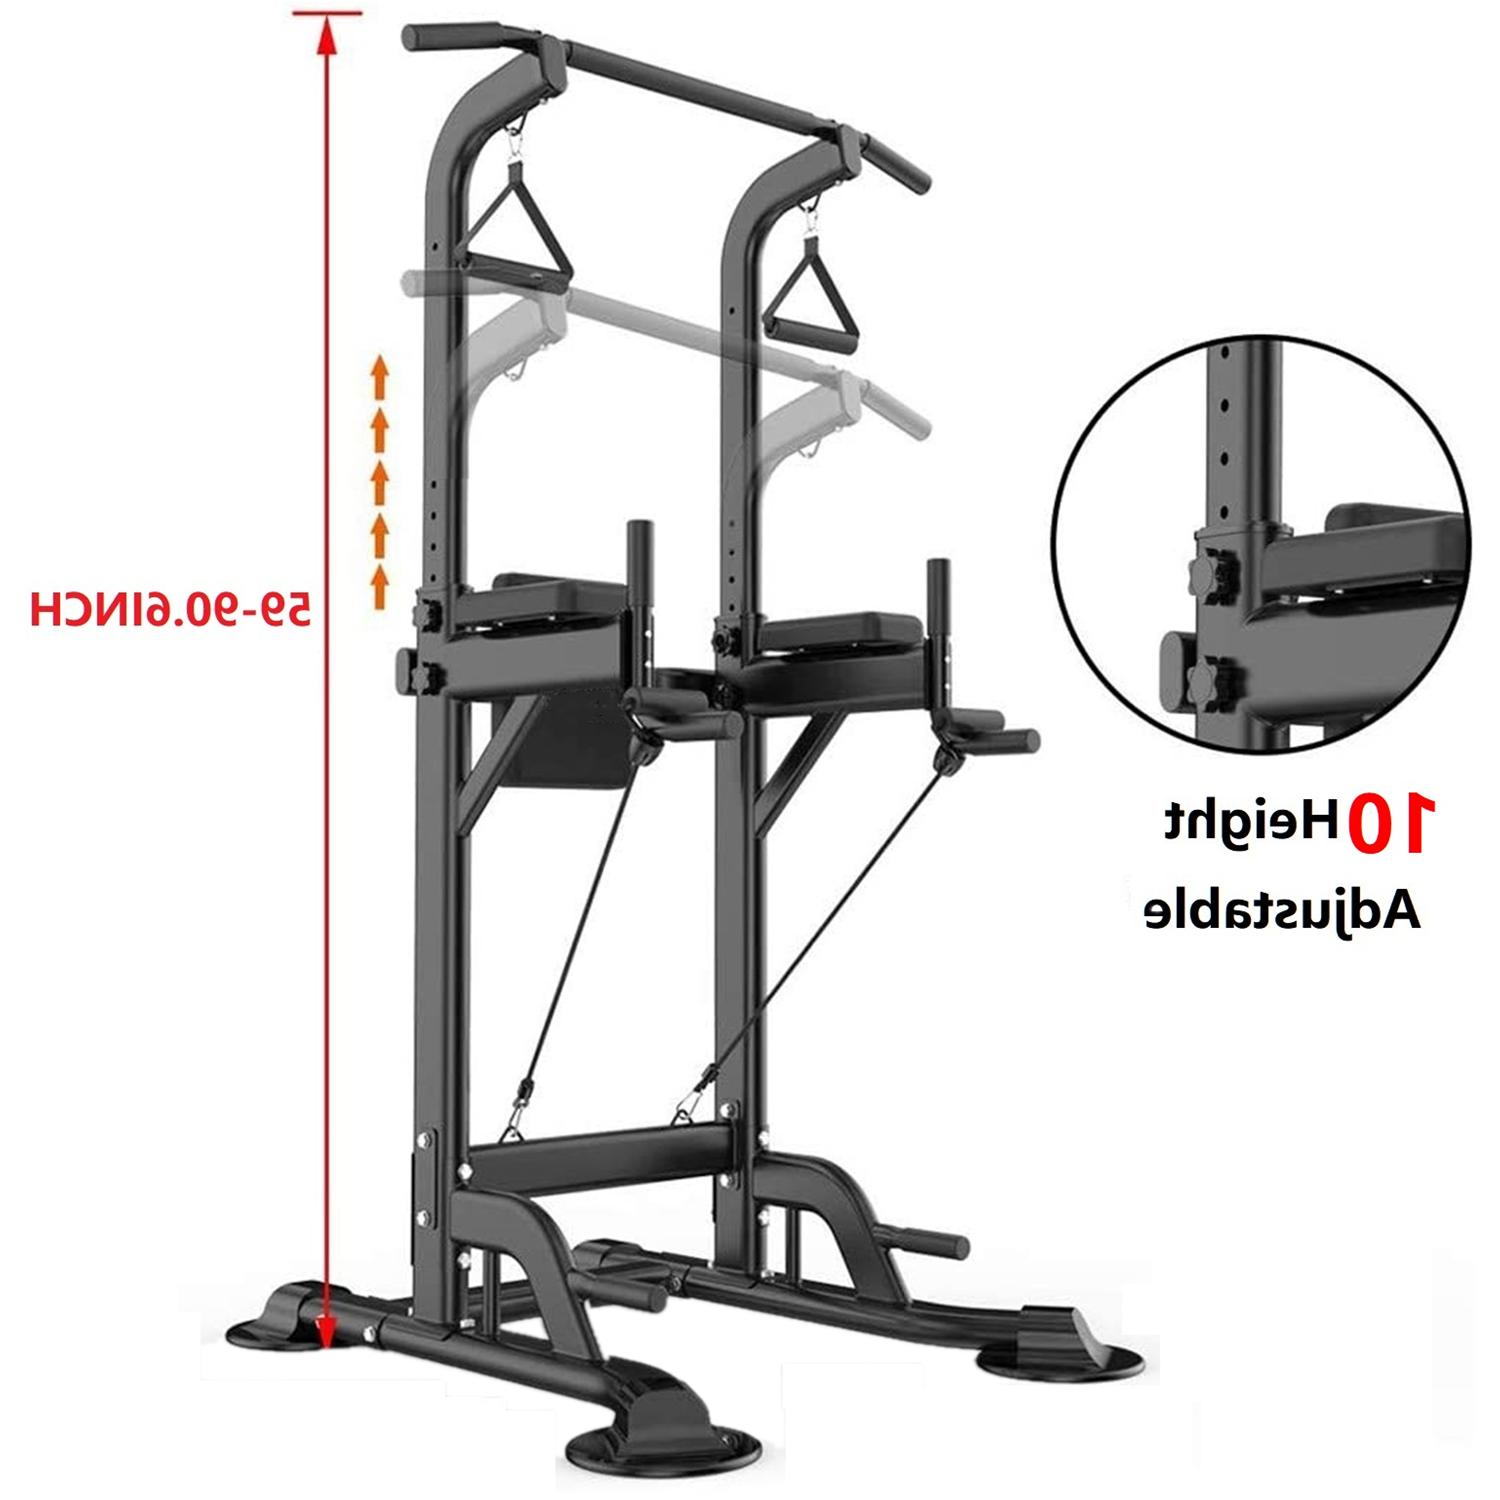 LB Power Tower Pull-up Equipment Multi Up